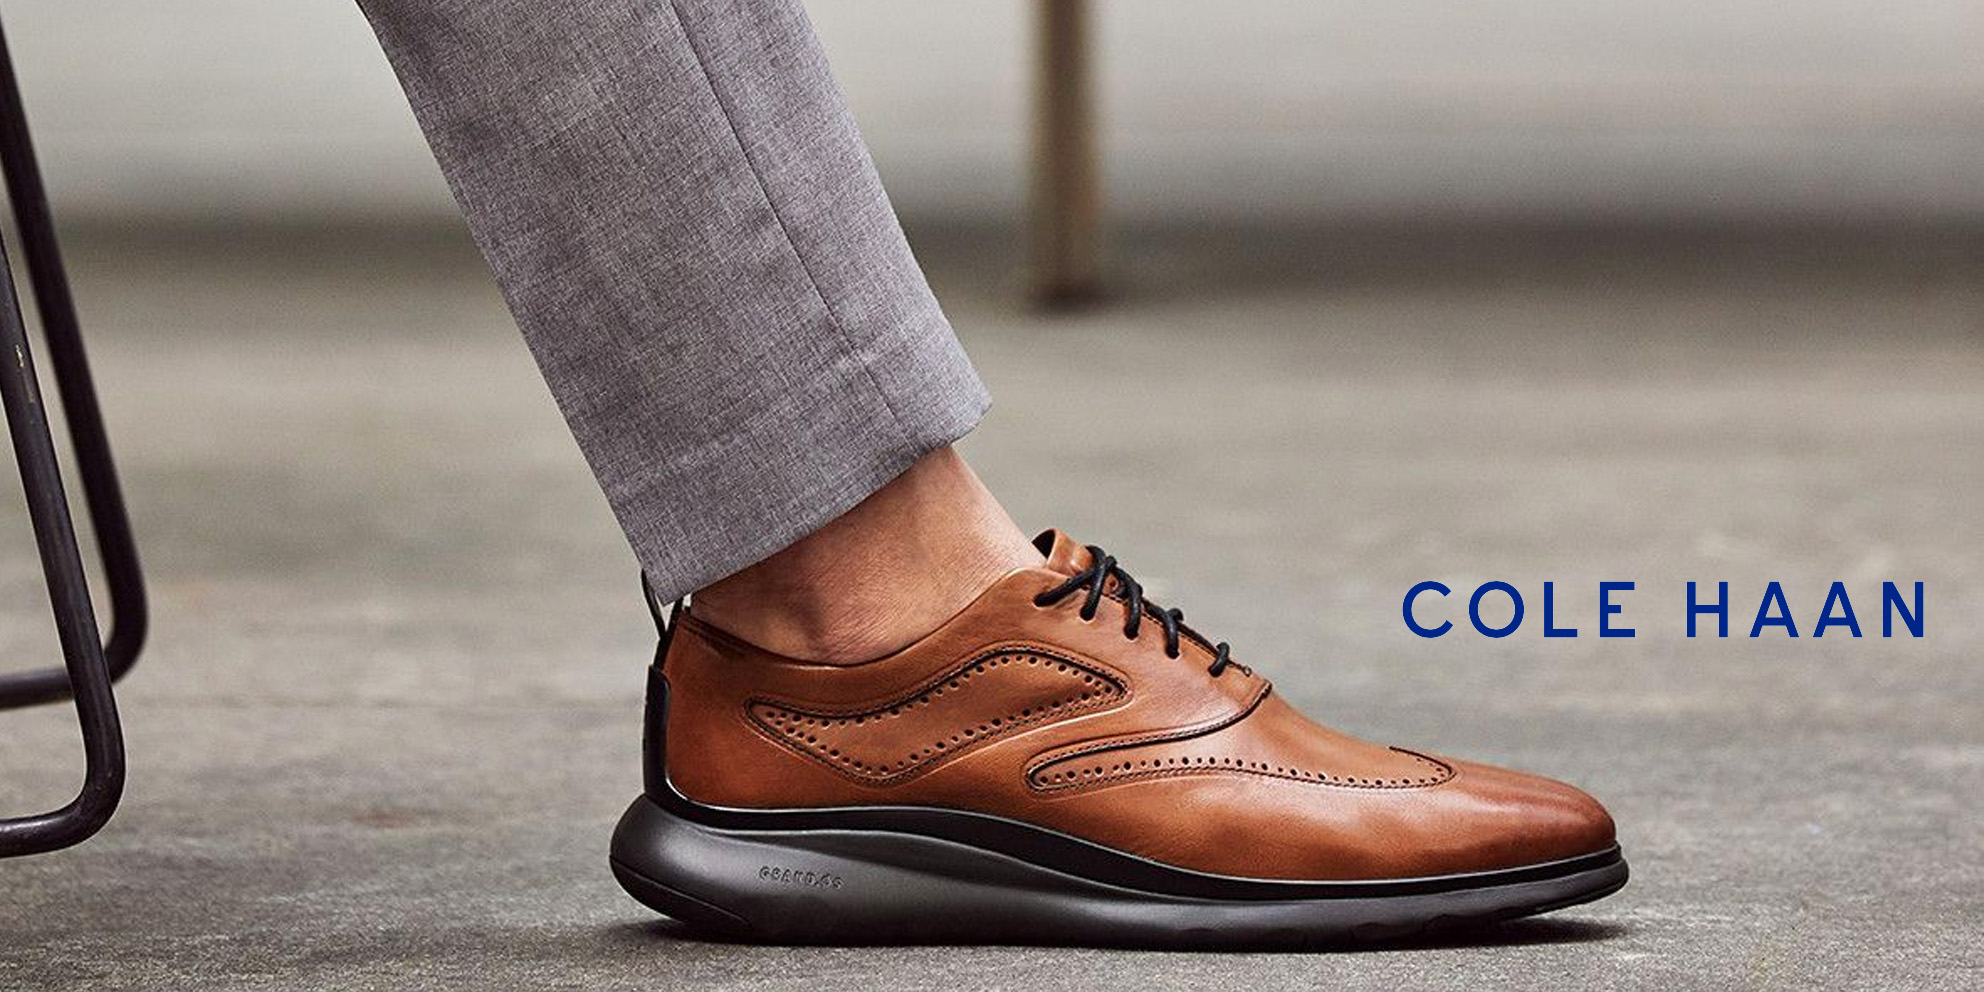 Cole Haan's Memorial Day Event offers an extra 40% off all sale items + free shipping